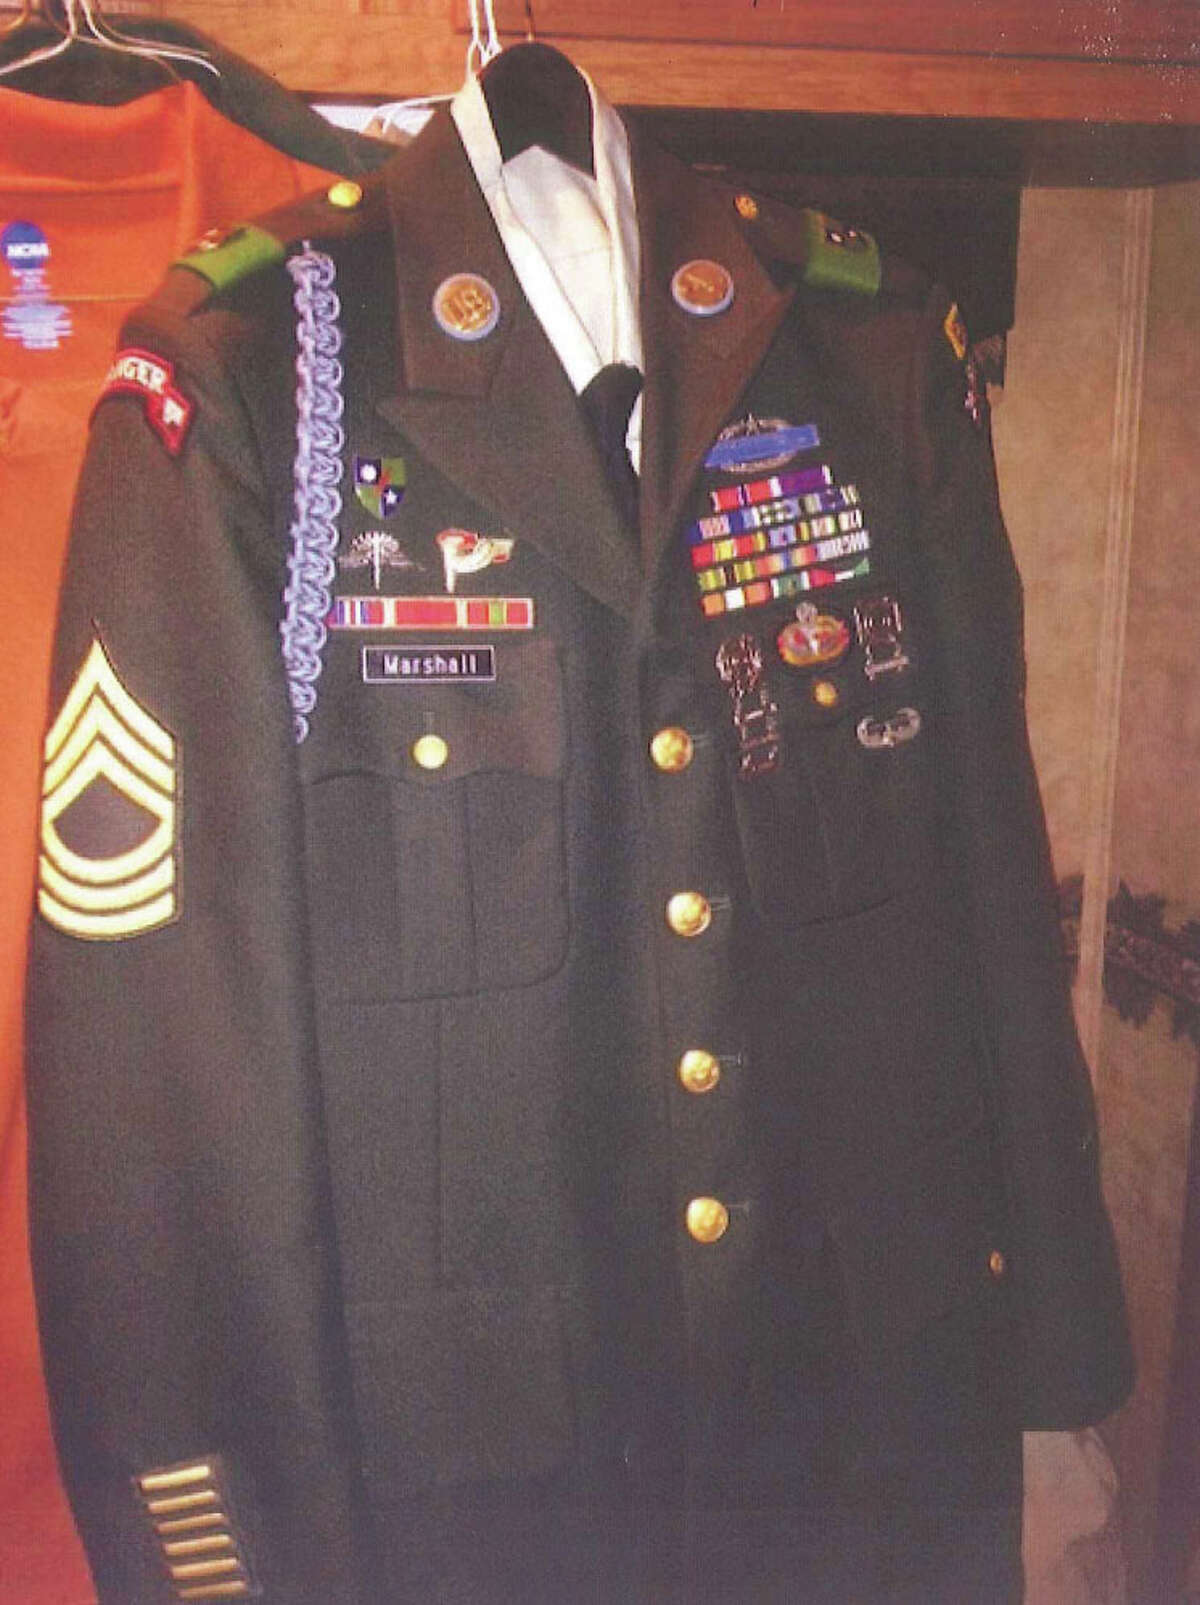 Photo of a uniform allegedly used by Daniel Lee Marshall, Jr. to portray himself as an Army Ranger, entered into evidence in a bond hearing held in the U.S. District Court in the Southern District of Texas on April 17.